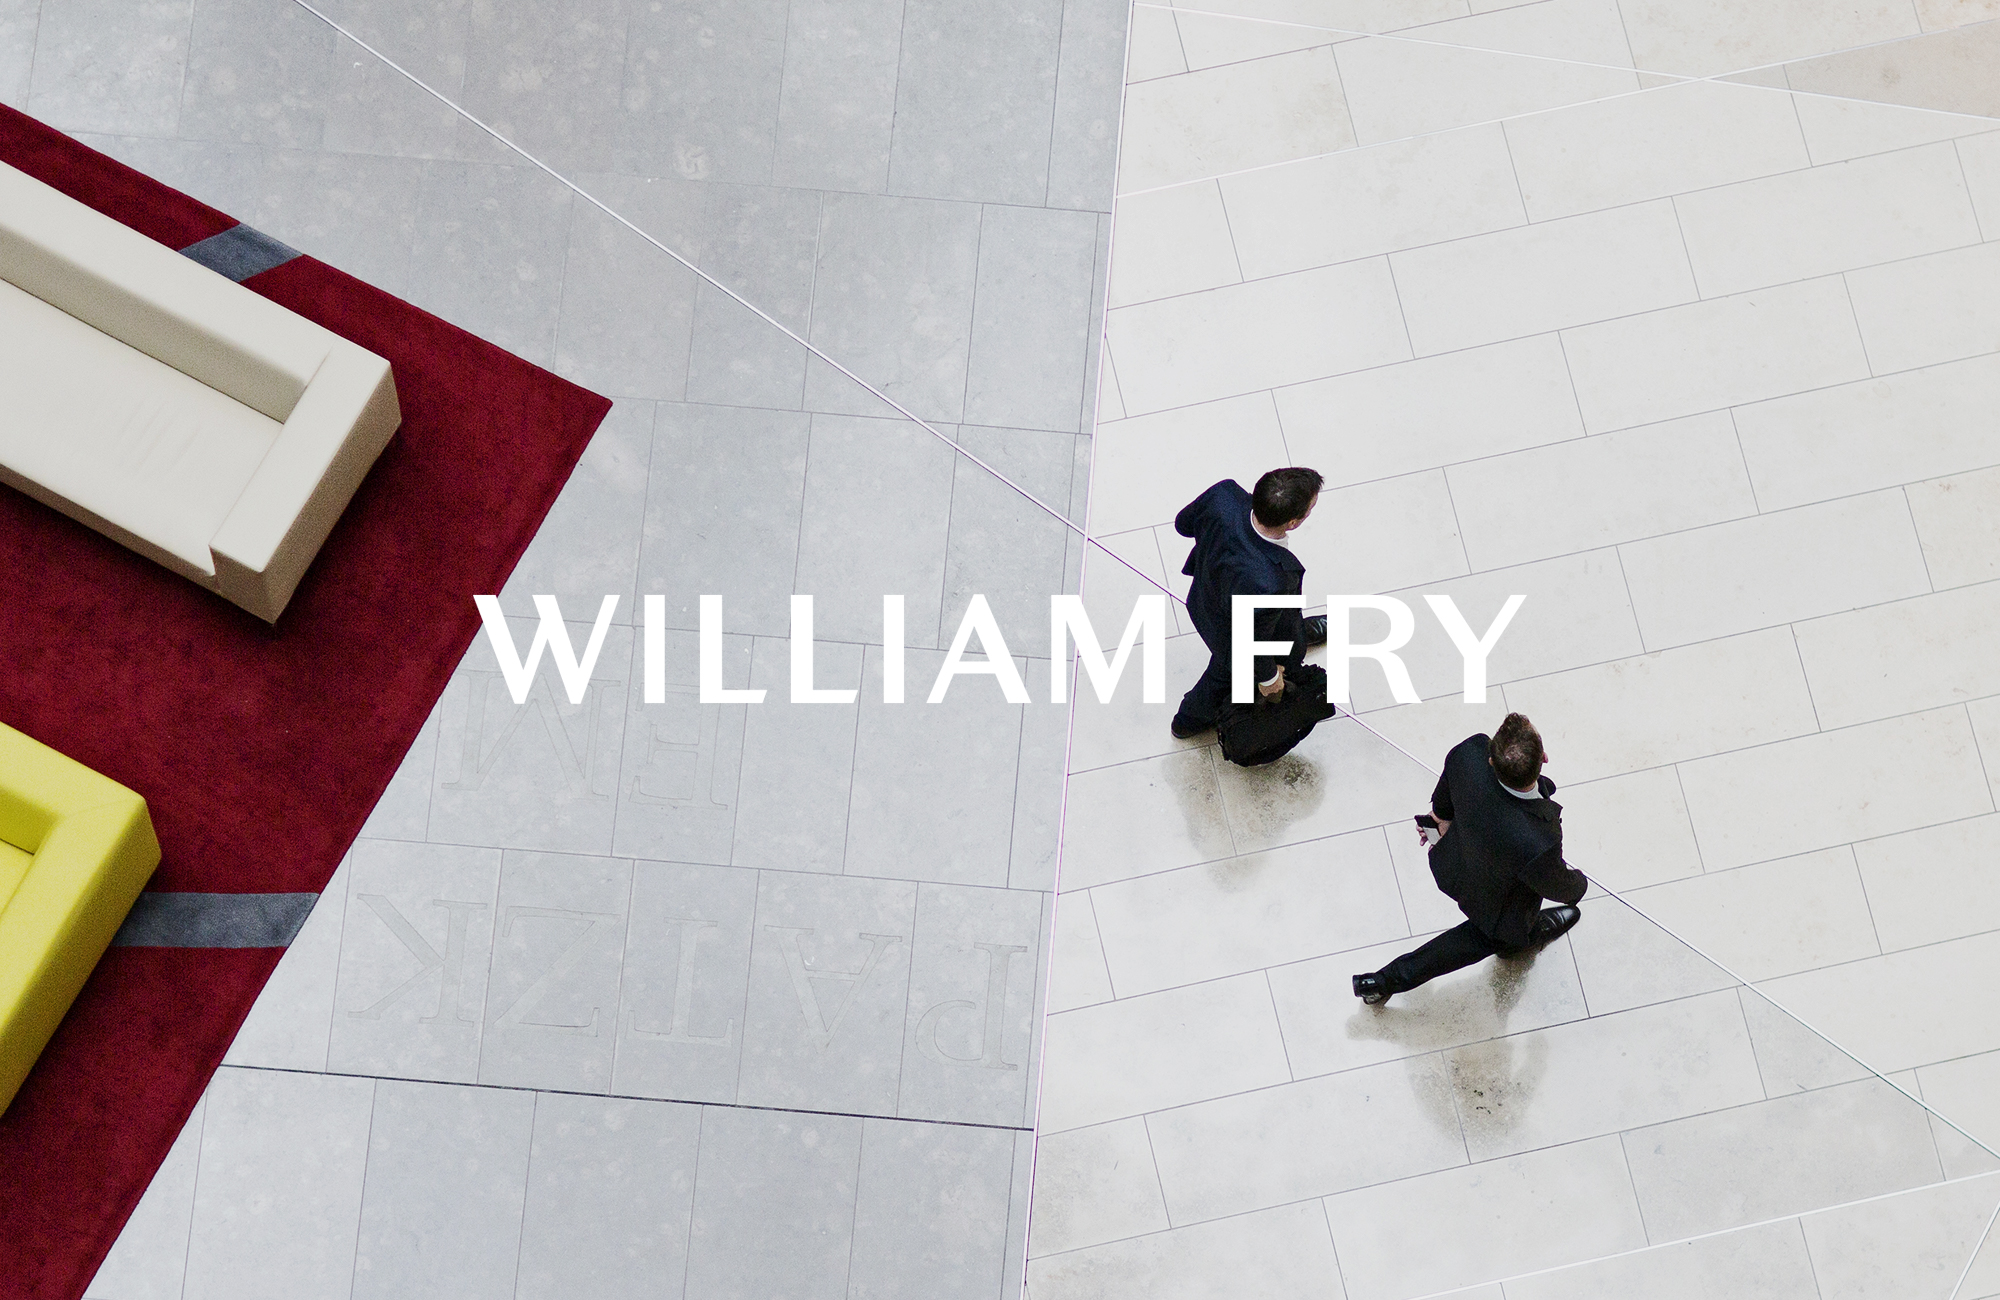 Cover image: William Fry – Visual Identity